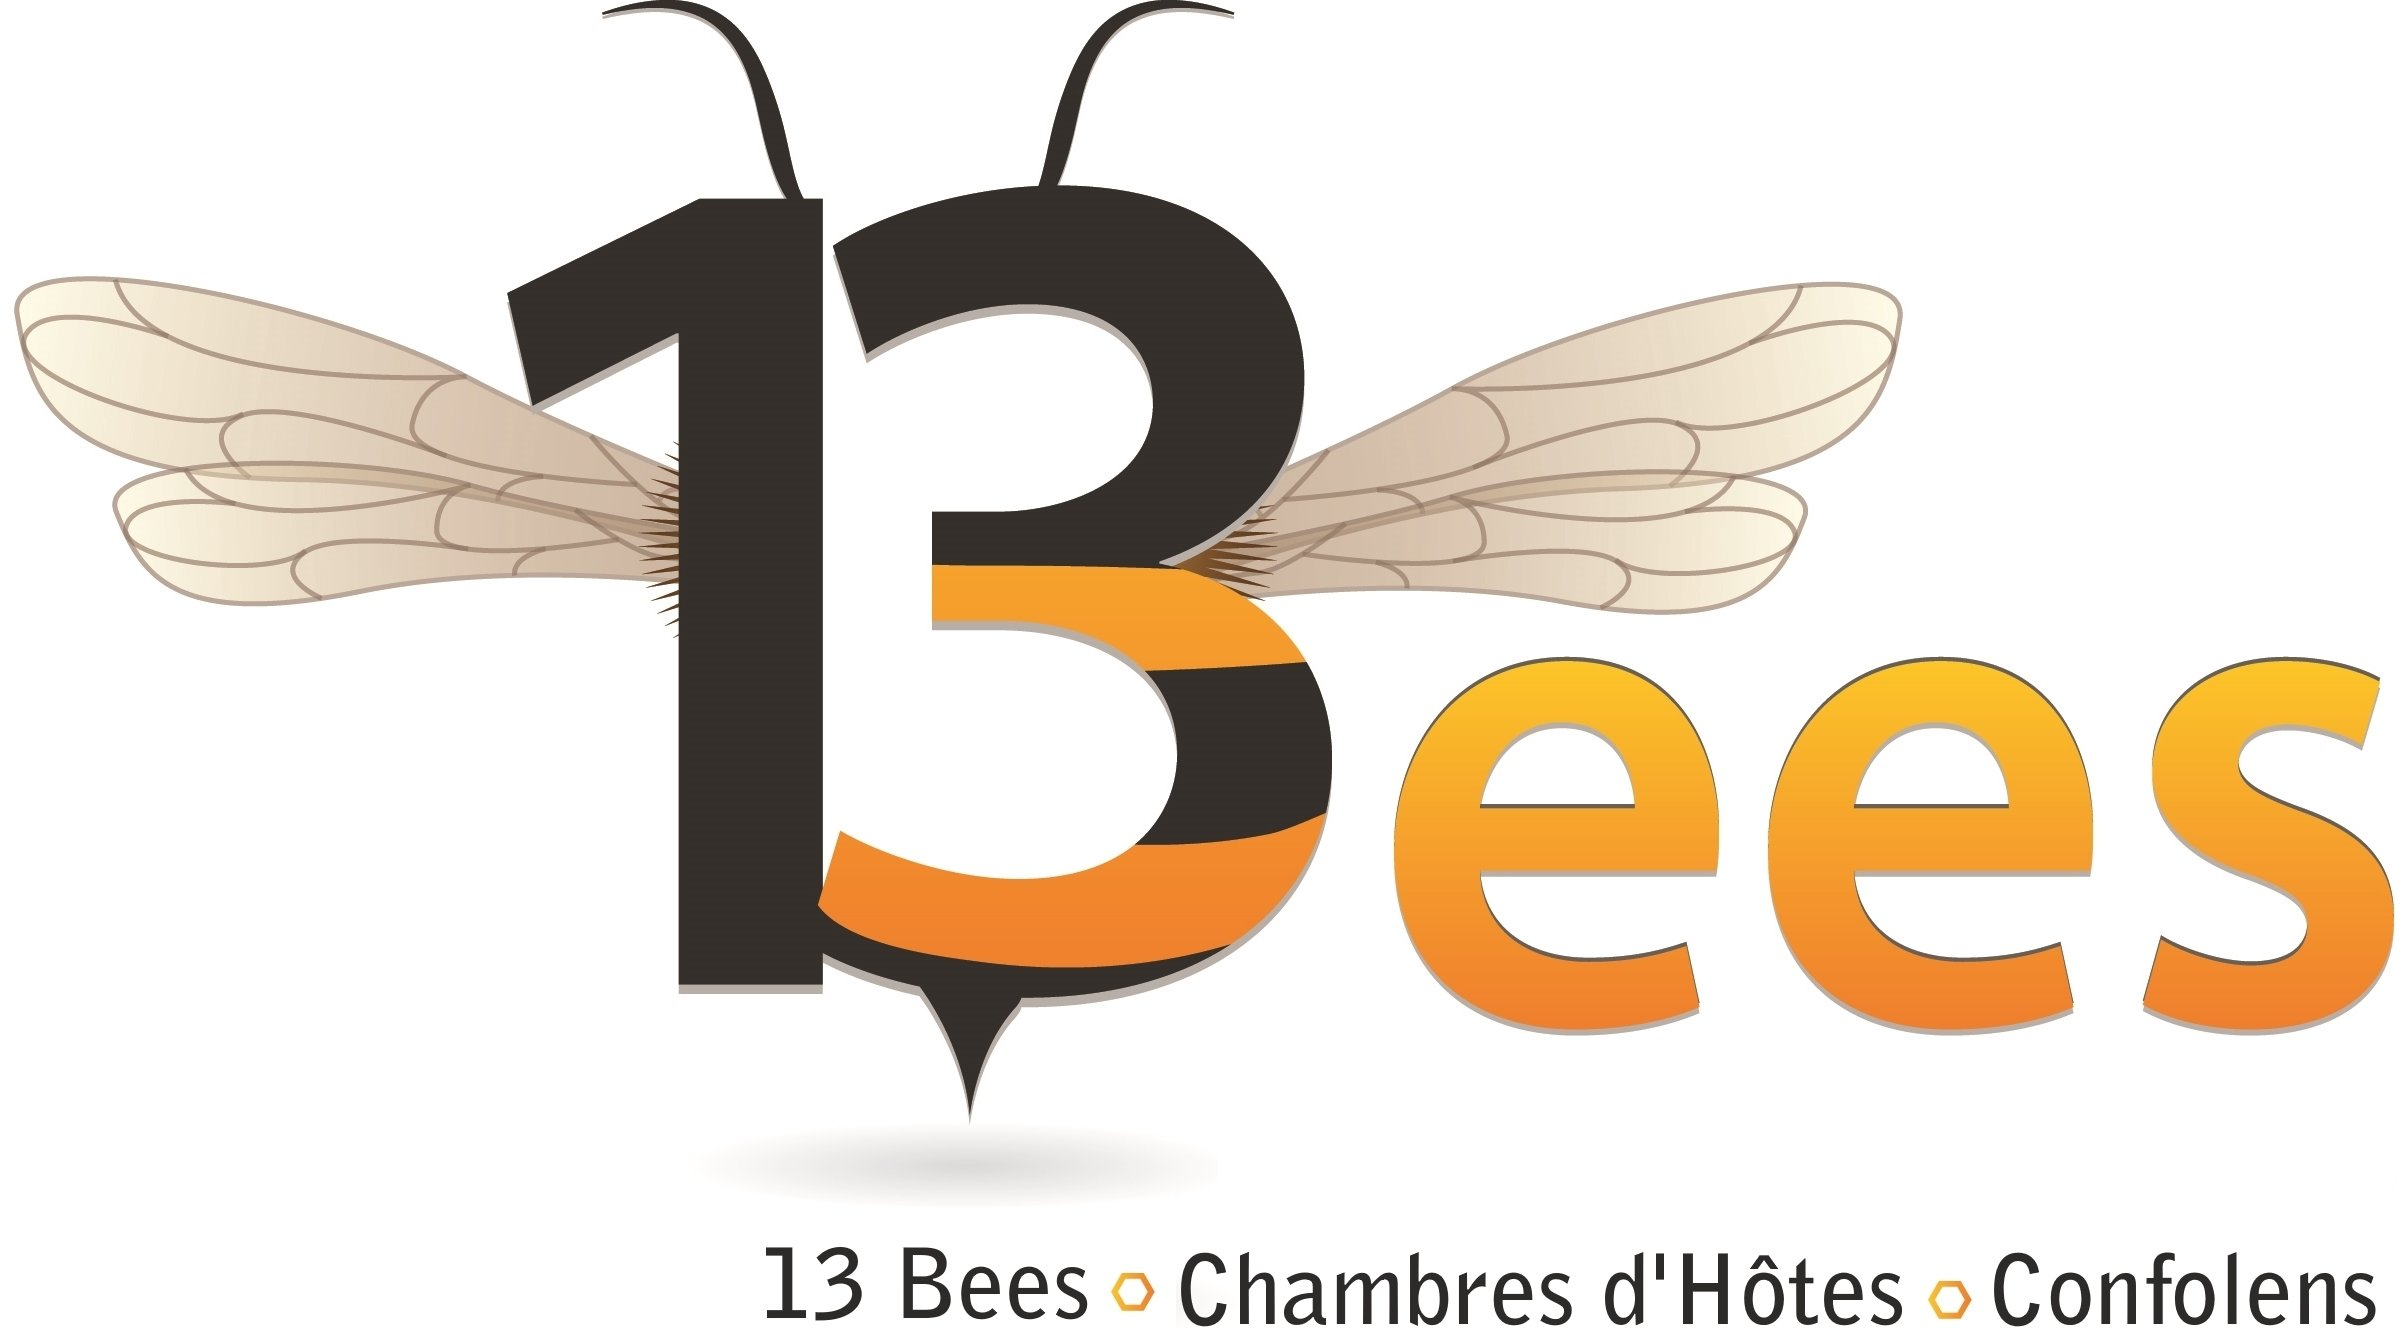 13 Bees beekeeing experiences and bed and breakfast logo